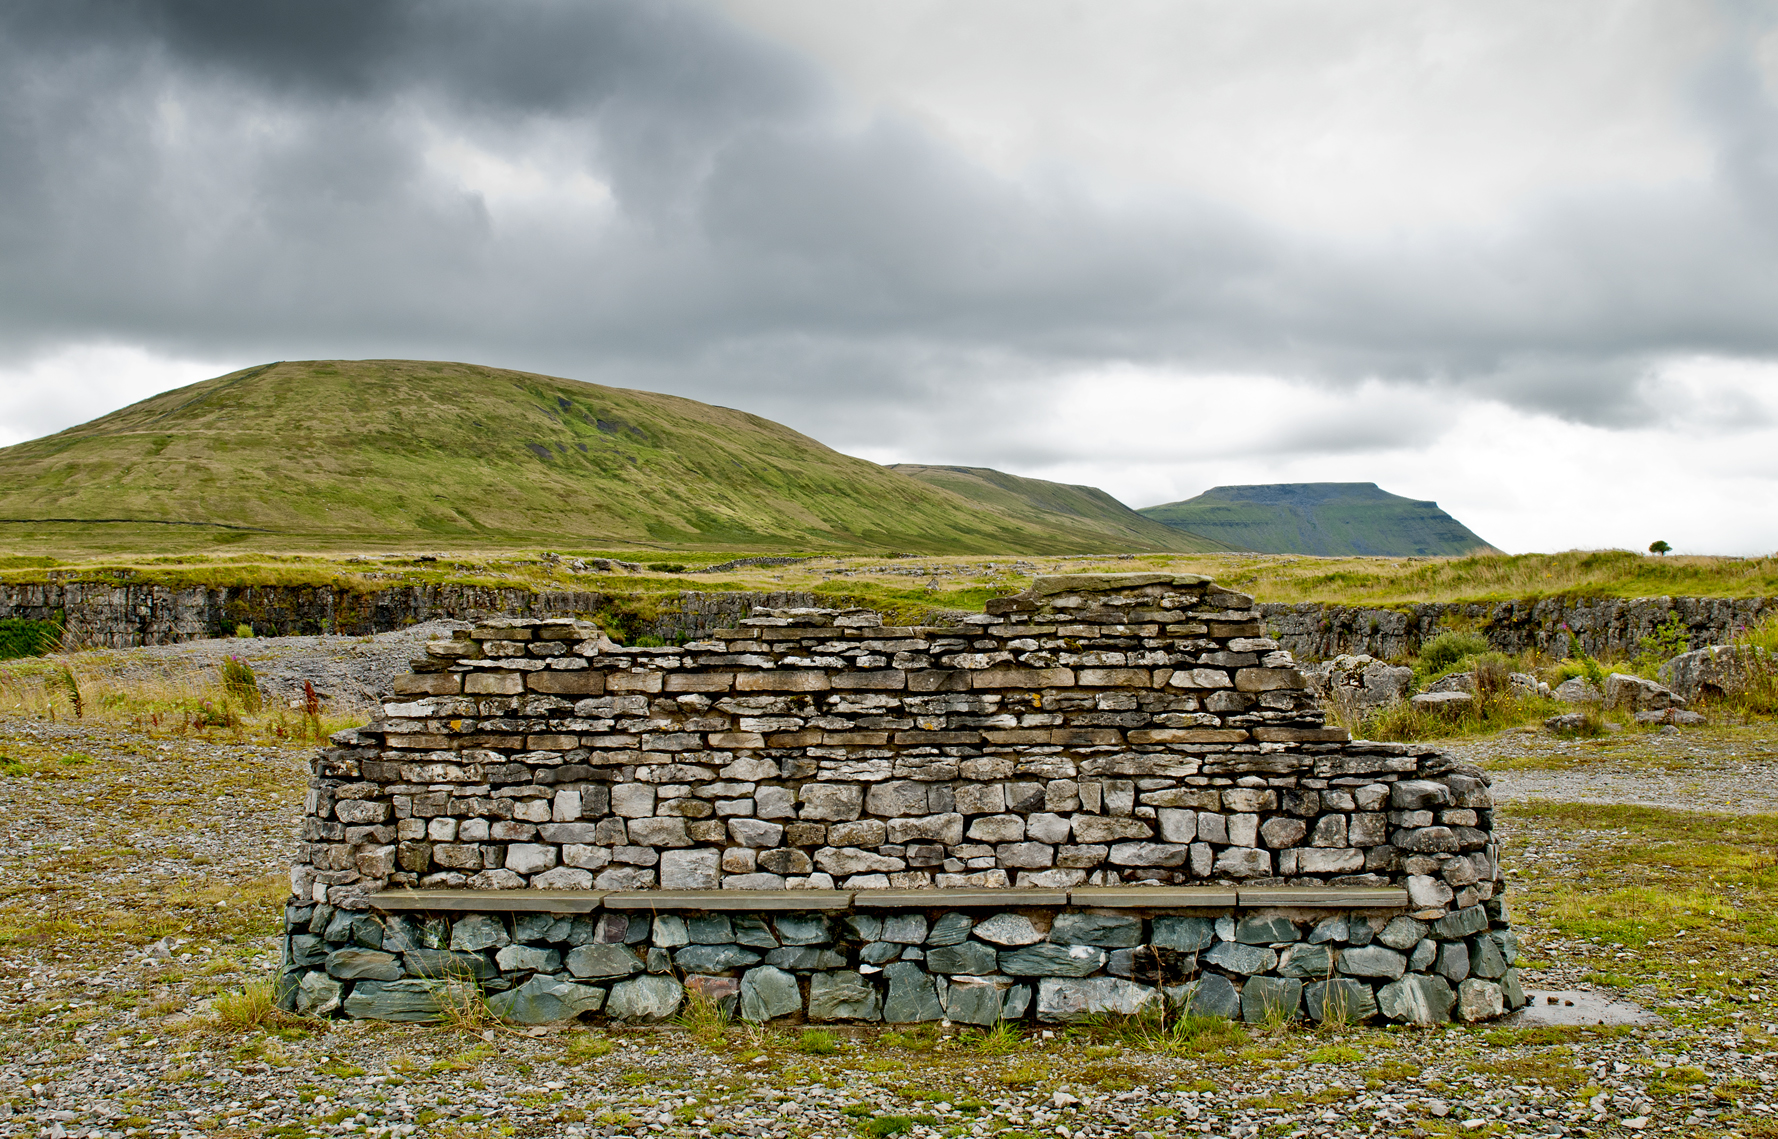 Ingleborough Archaeology Exhibition